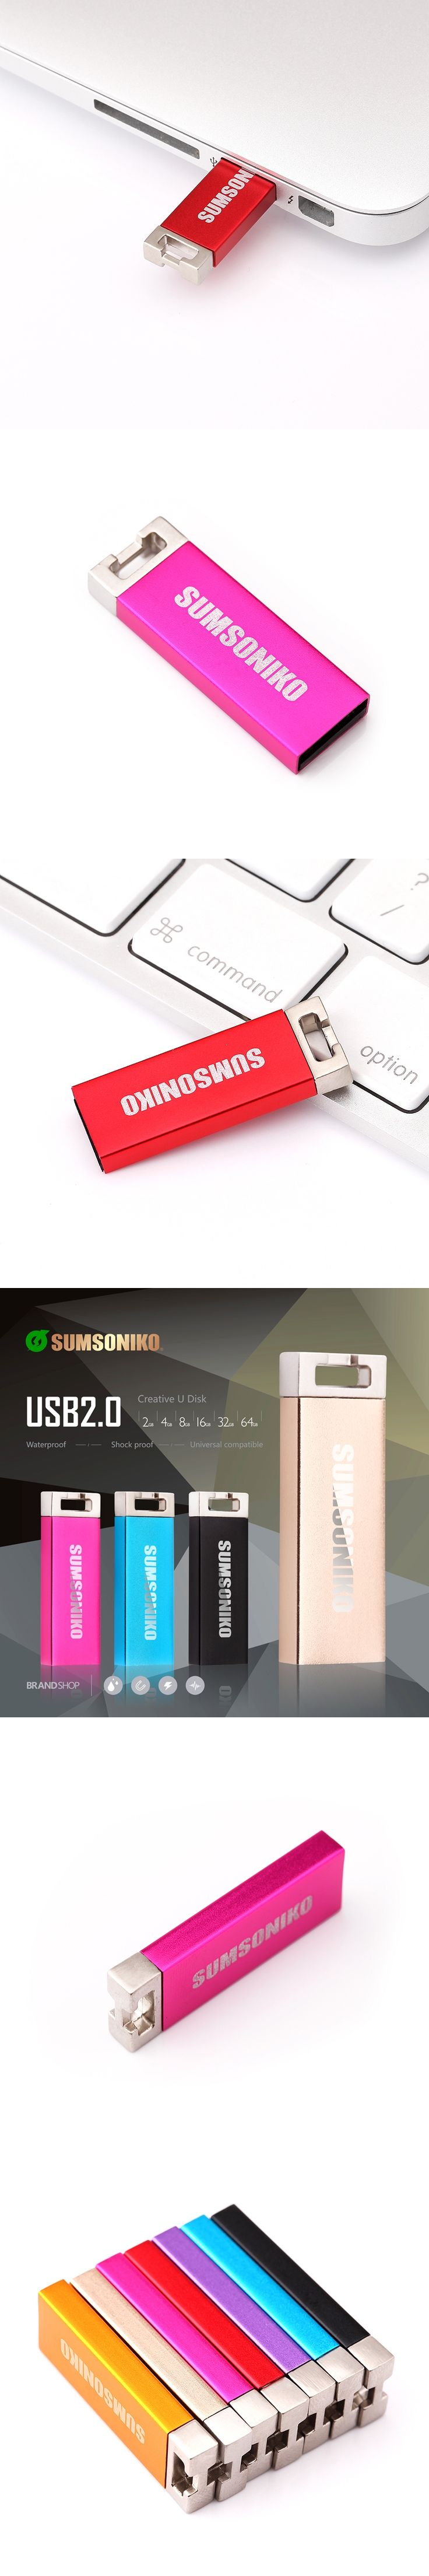 17 Best External Storage Images On Pinterest Flashdisk Hp 2gb Sumsoniko Usb Flash Drive High Speed 20 Memory Stick 7 Colors Gift Key